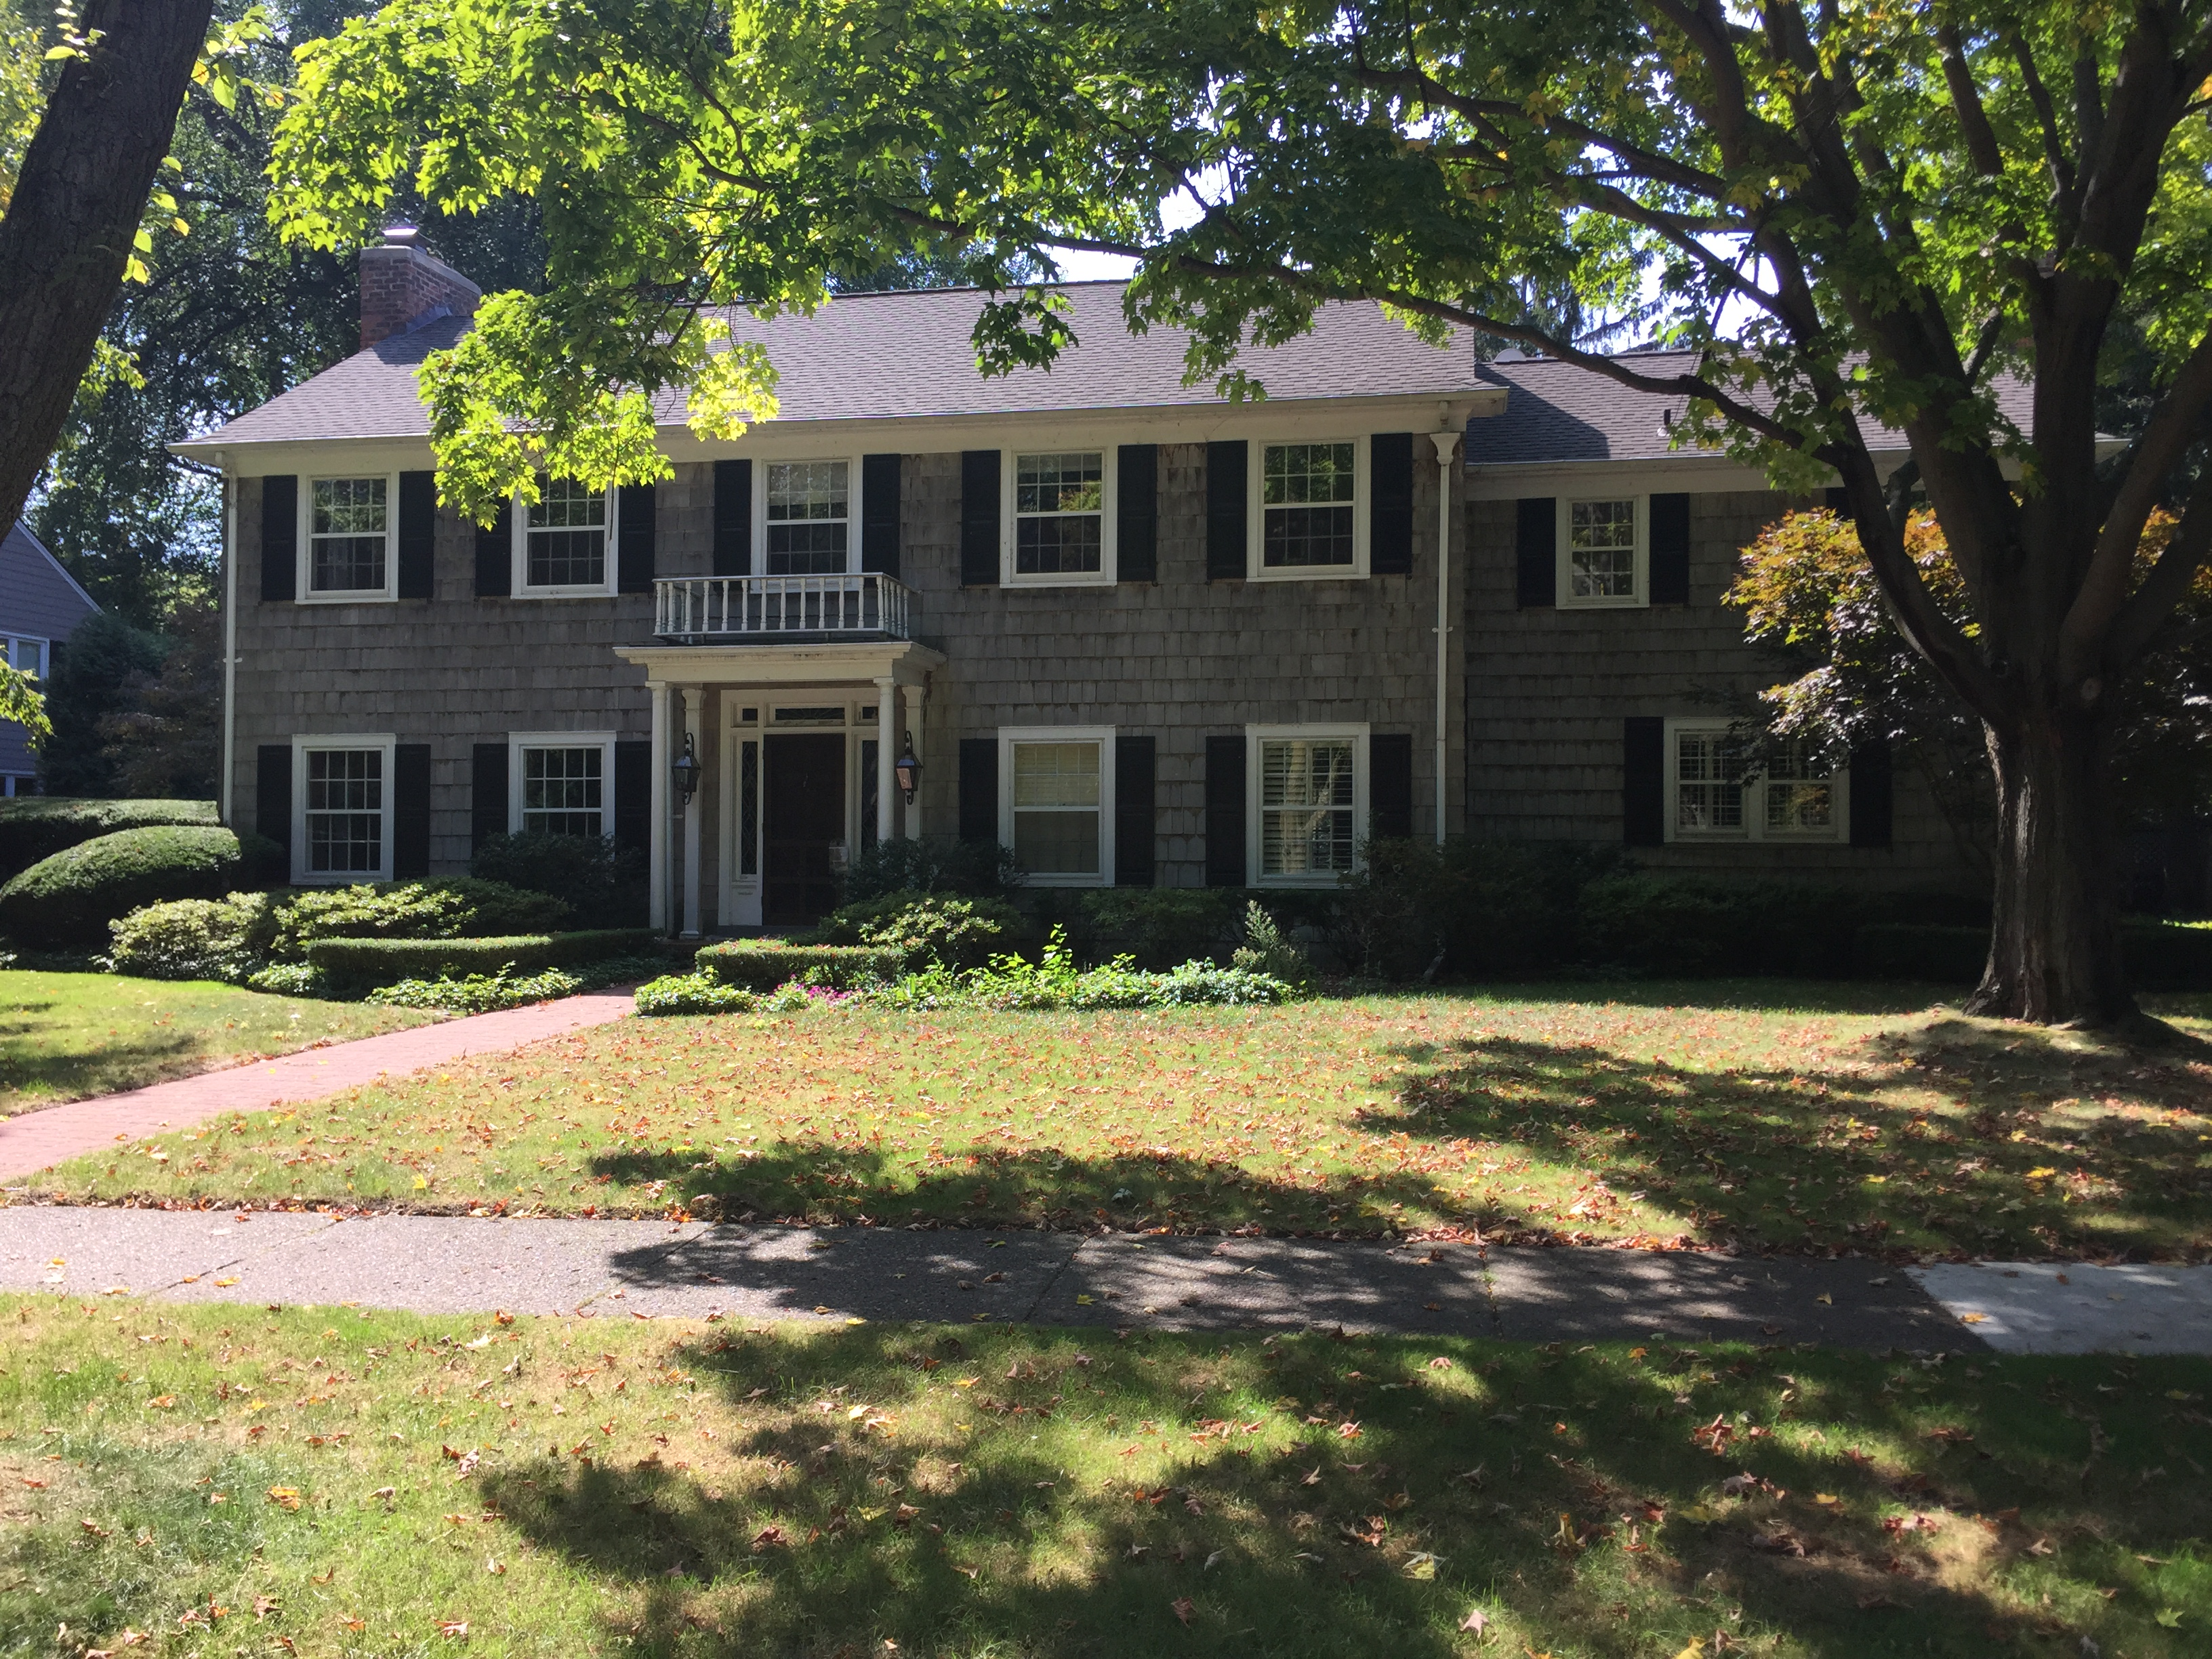 69 Touraine, Grosse Pointe Farms, MI 48236